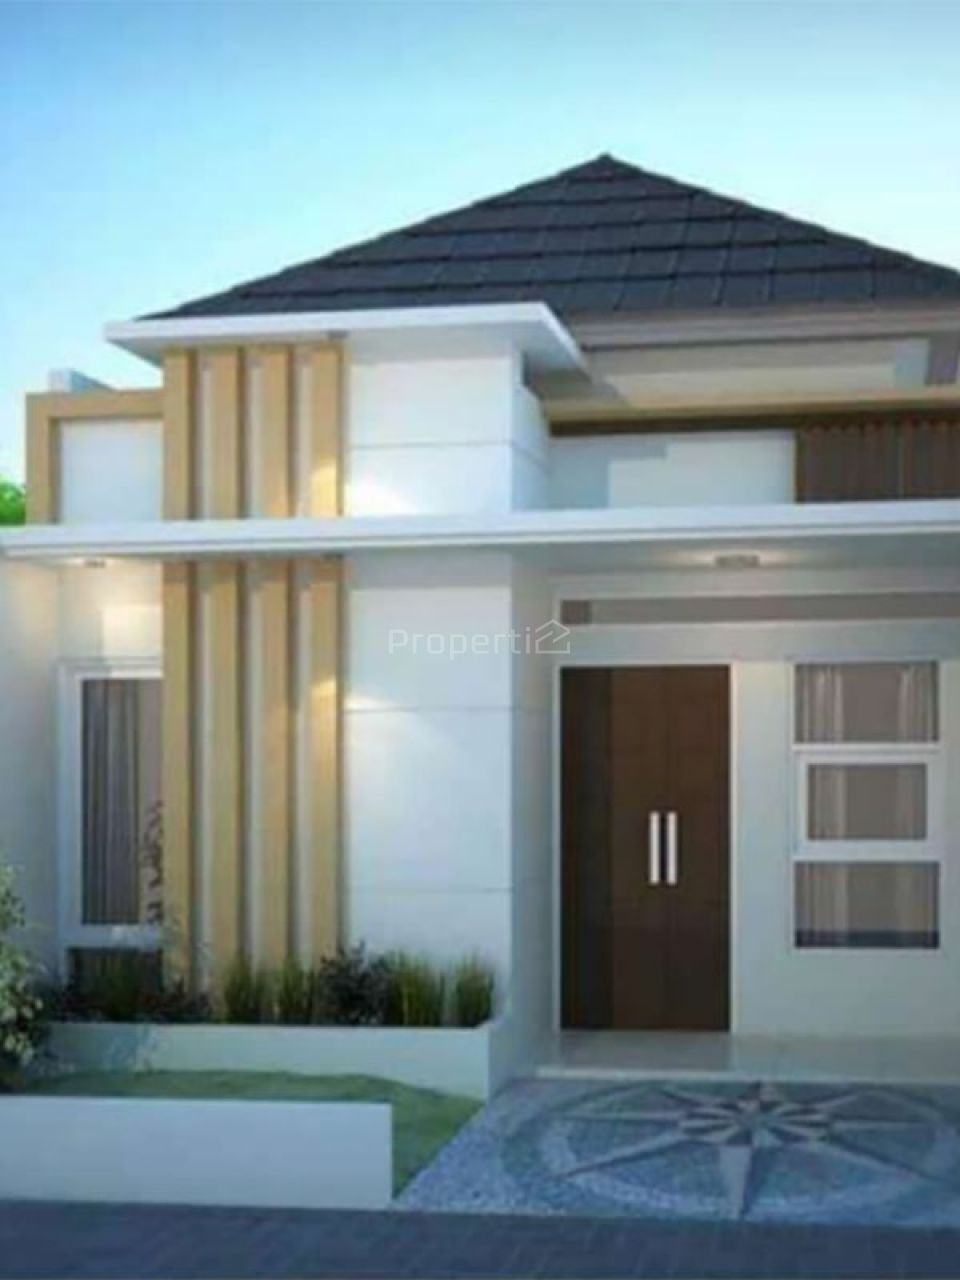 New House in Cluster, Pesona Saptorenggo Permai, Pakis, Kab. Malang